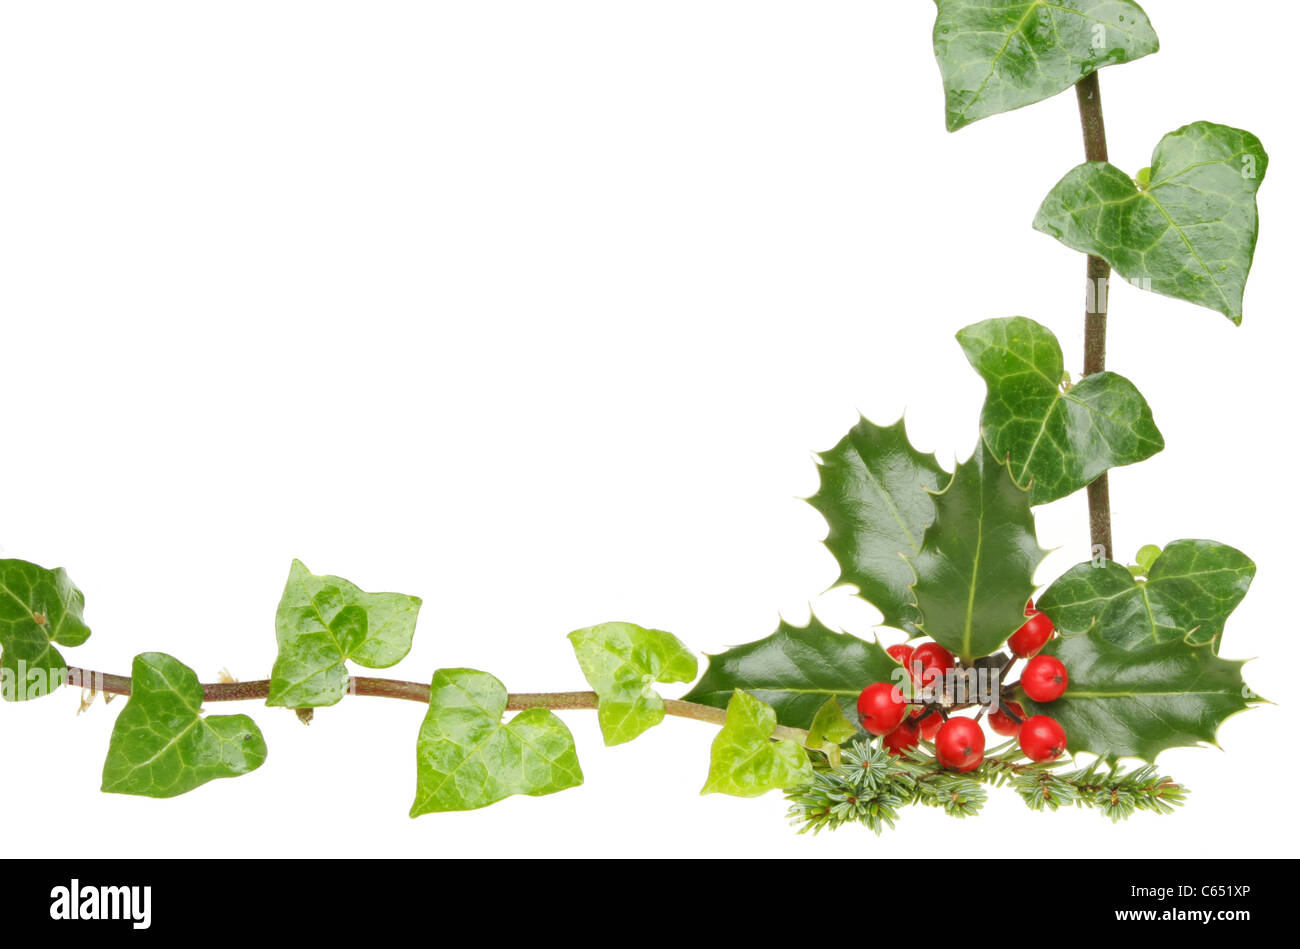 Christmas themed border of holly and ivy with white copy space - Stock Image